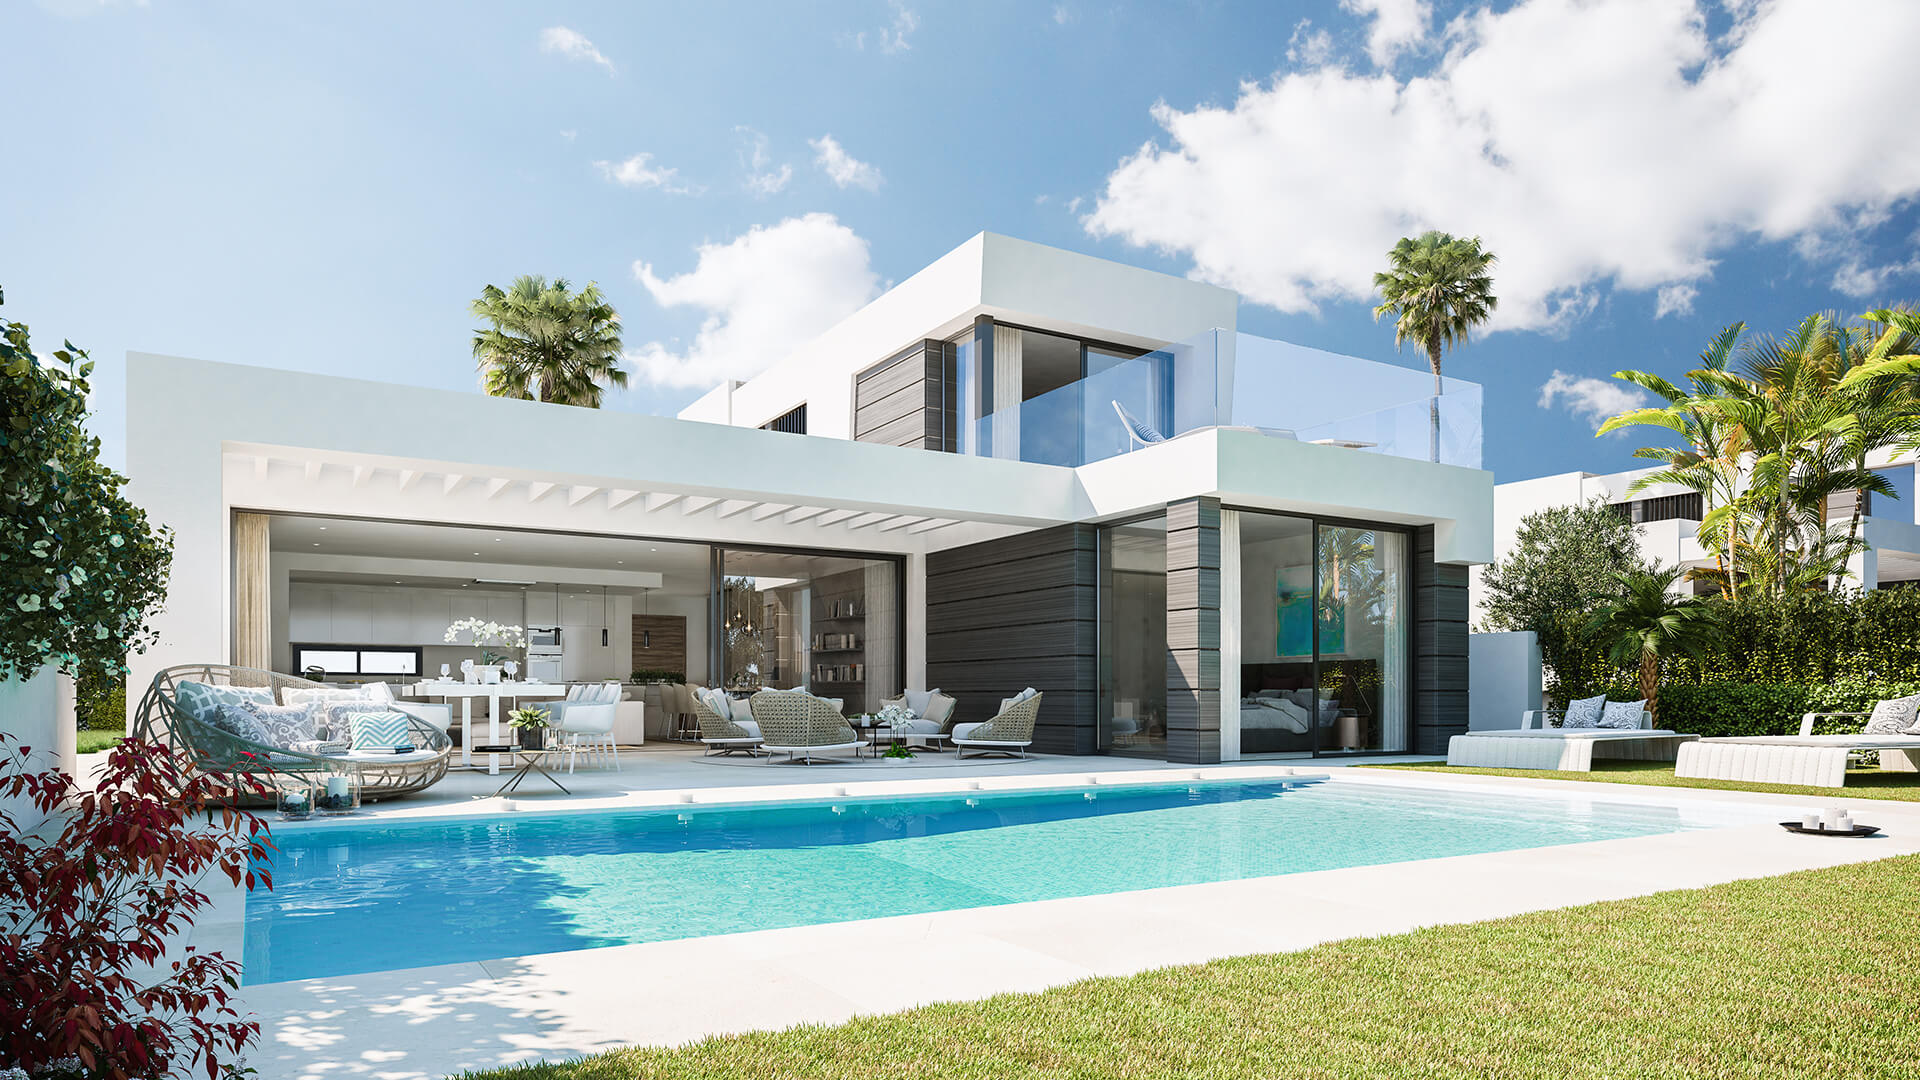 Royale villas calahonda costa del sol marbella for sale for Villa royale